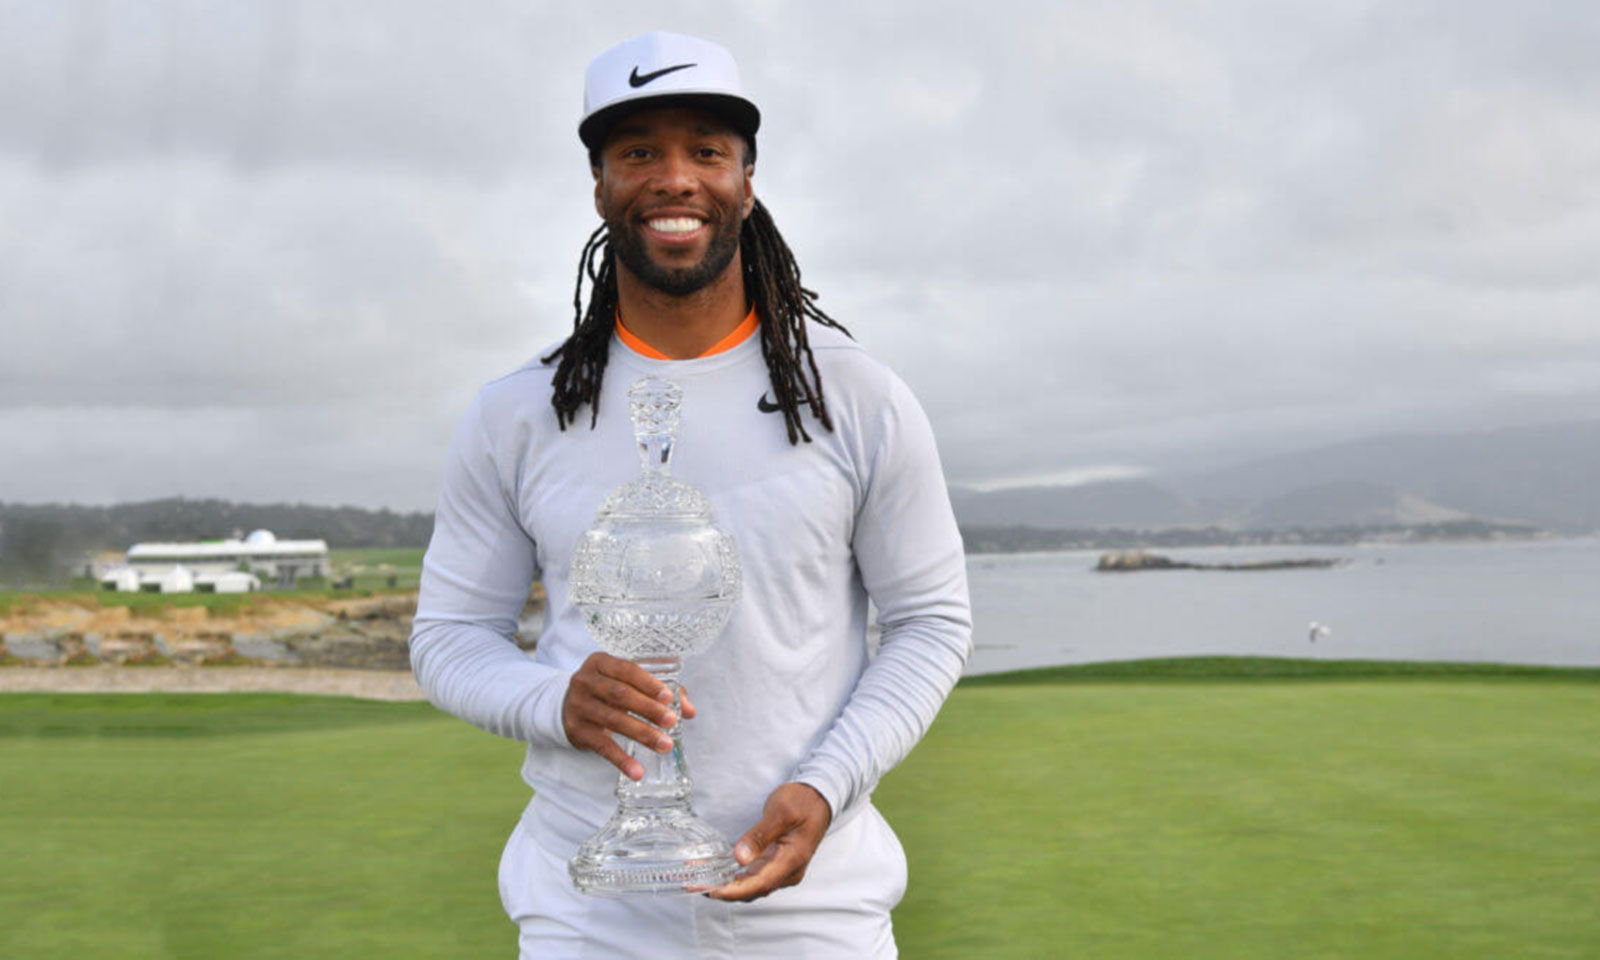 Larry Fitzgerald Wins Pebble Beach Celebrity Pro-Am